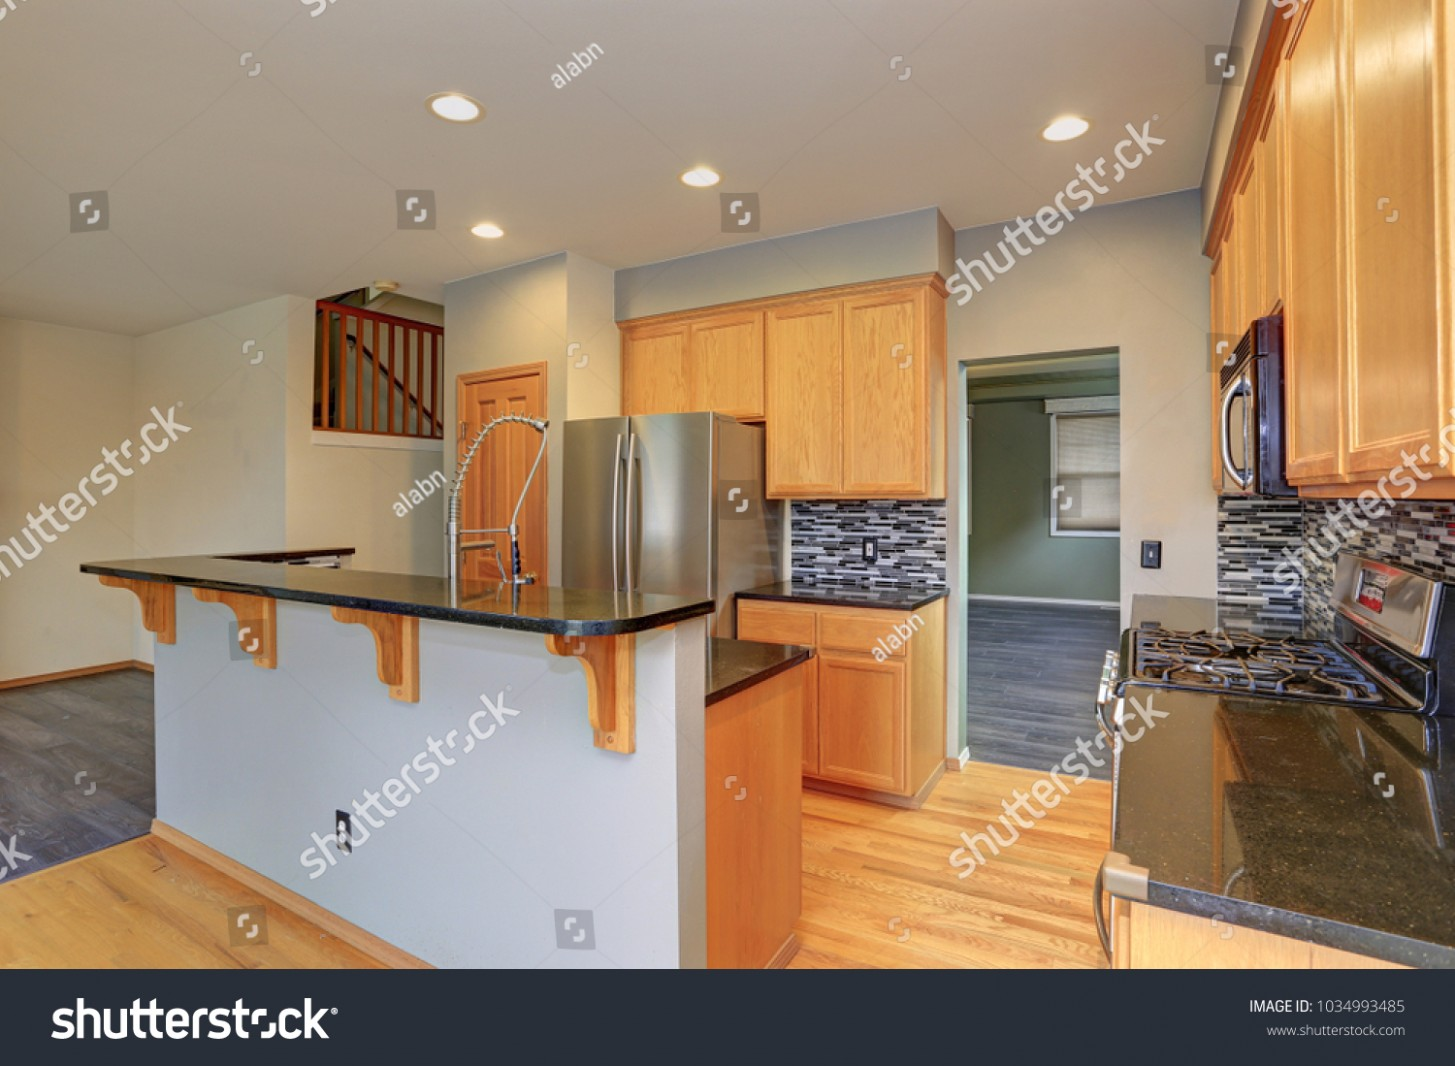 Small Compact Kitchen Room Light Wood Stock Photo (Edit Now  - Kitchen Backsplash With Light Wood Cabinets